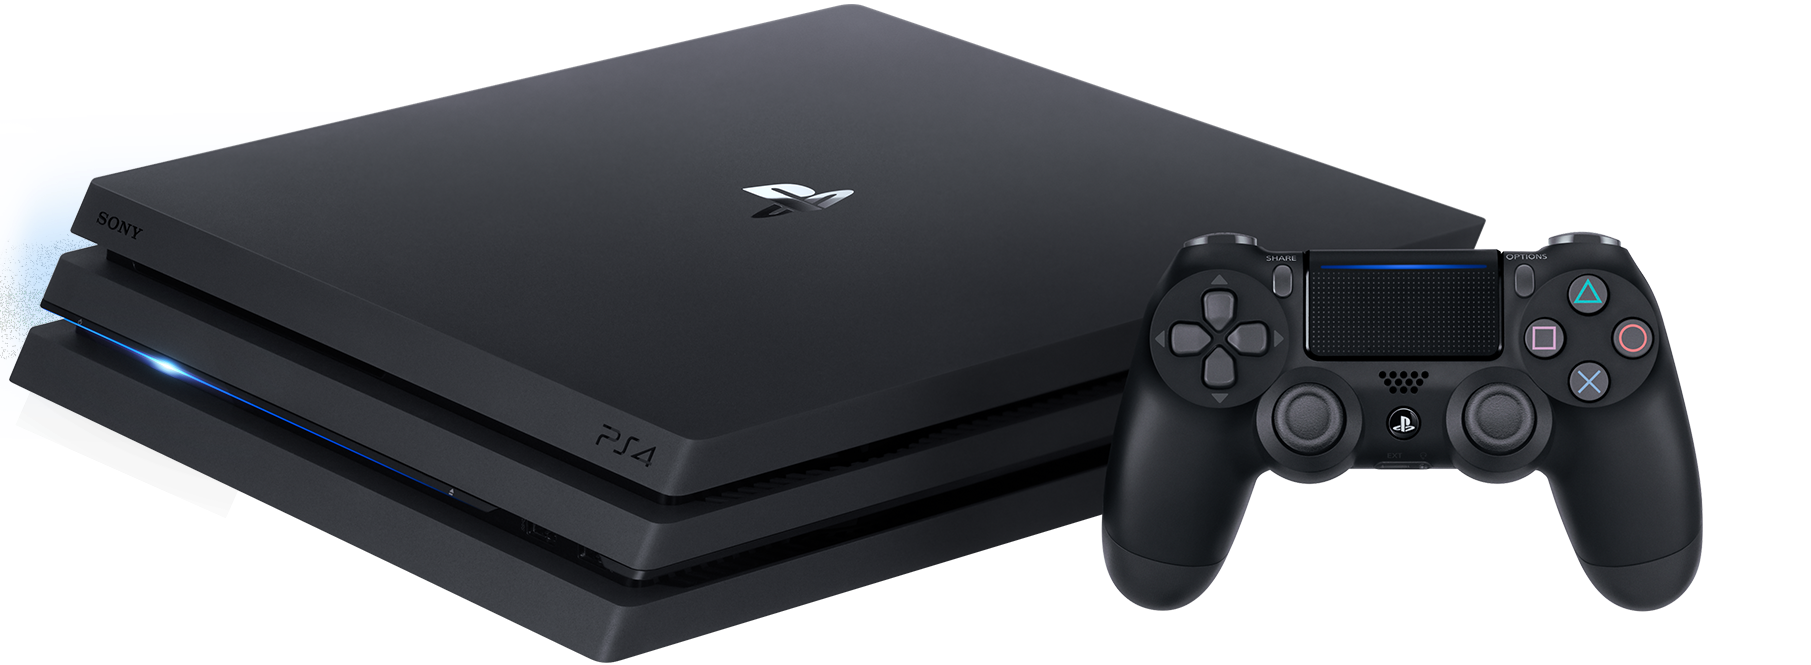 The Sony Playstation 5 Will Boast Sharper Graphics And Big Budget Exclusives. Credit: Sony.